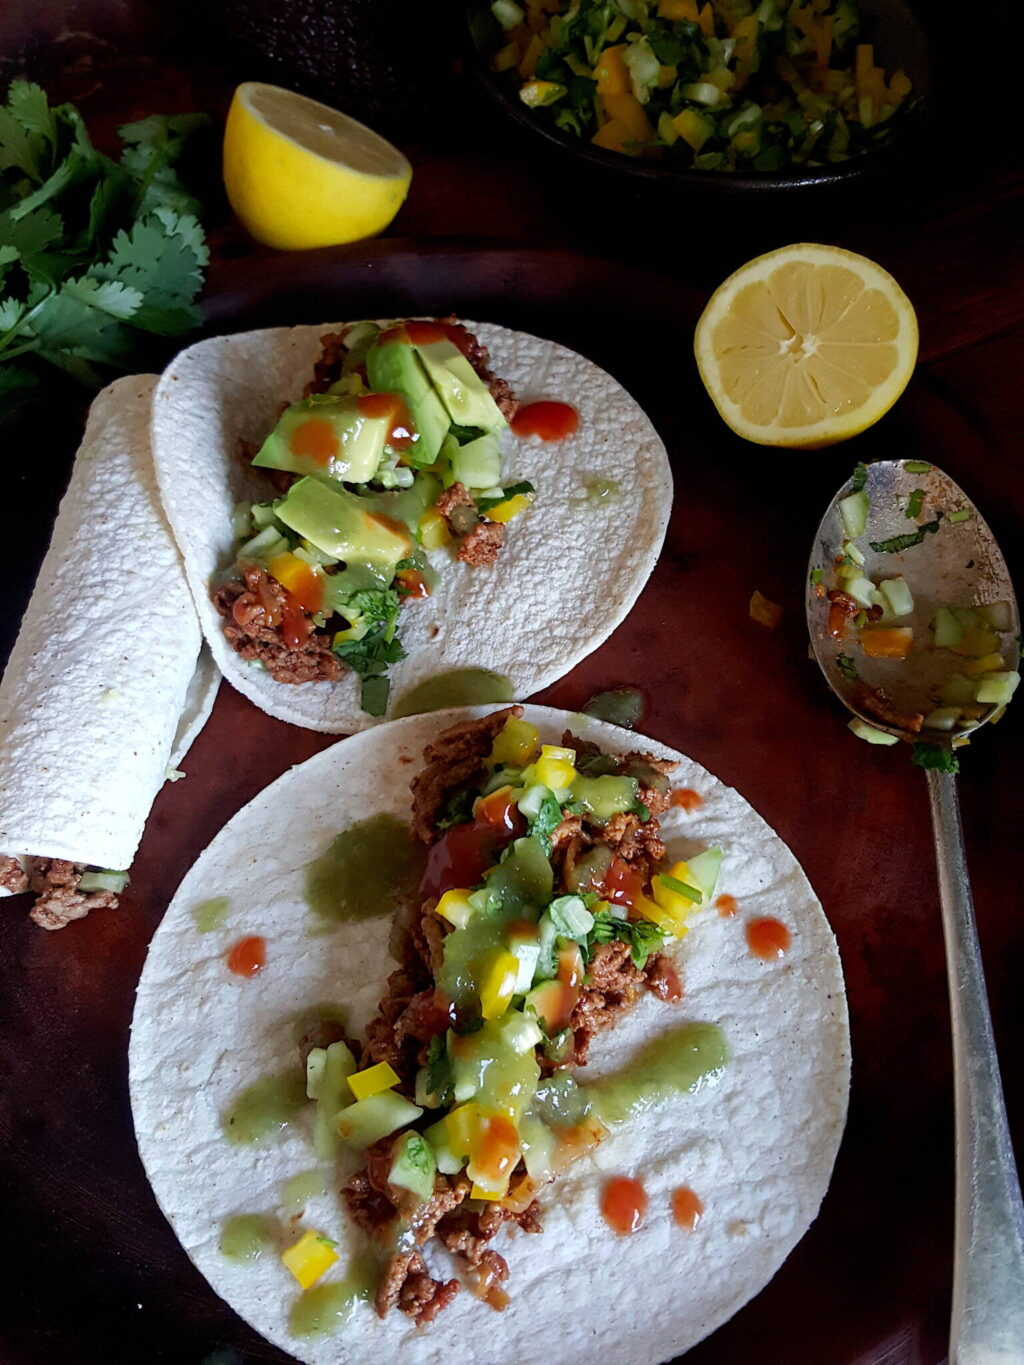 Tacos with Lamb in Adobo Sauce